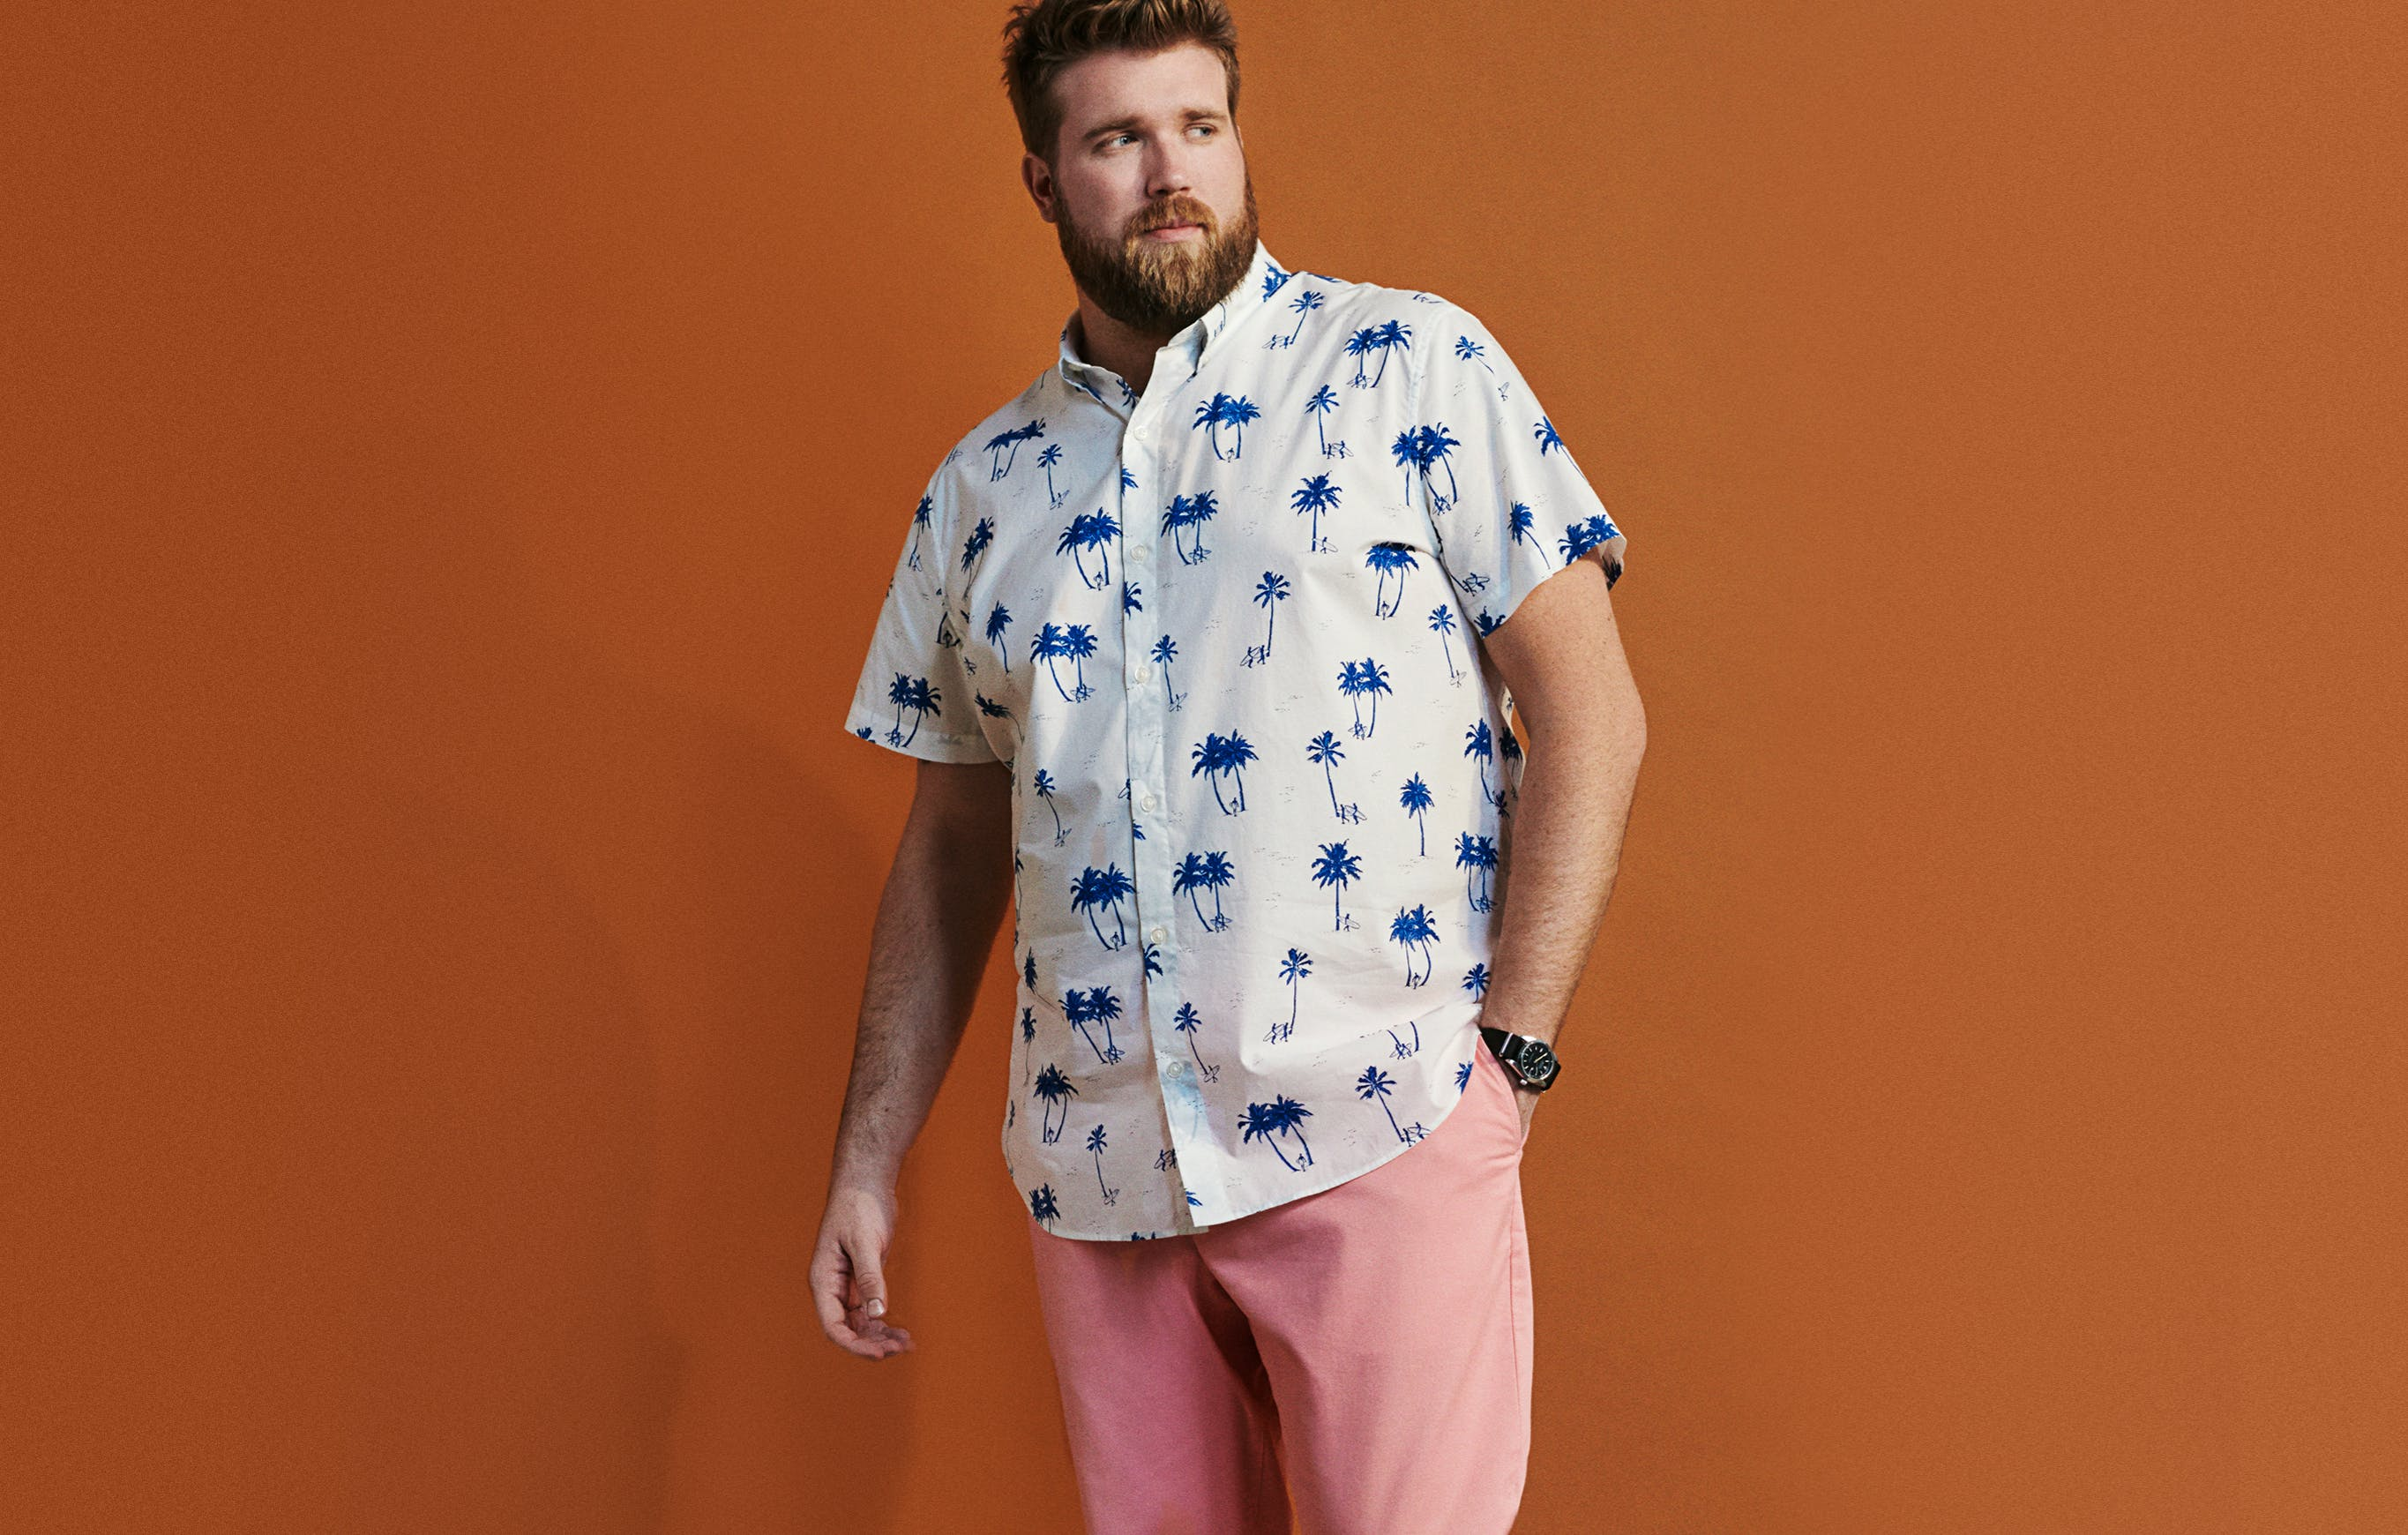 If you really love spring, and we mean really love spring, just go full out. But don't be apologetic — wear these pink chinos with a graphic print shirt and live loudly